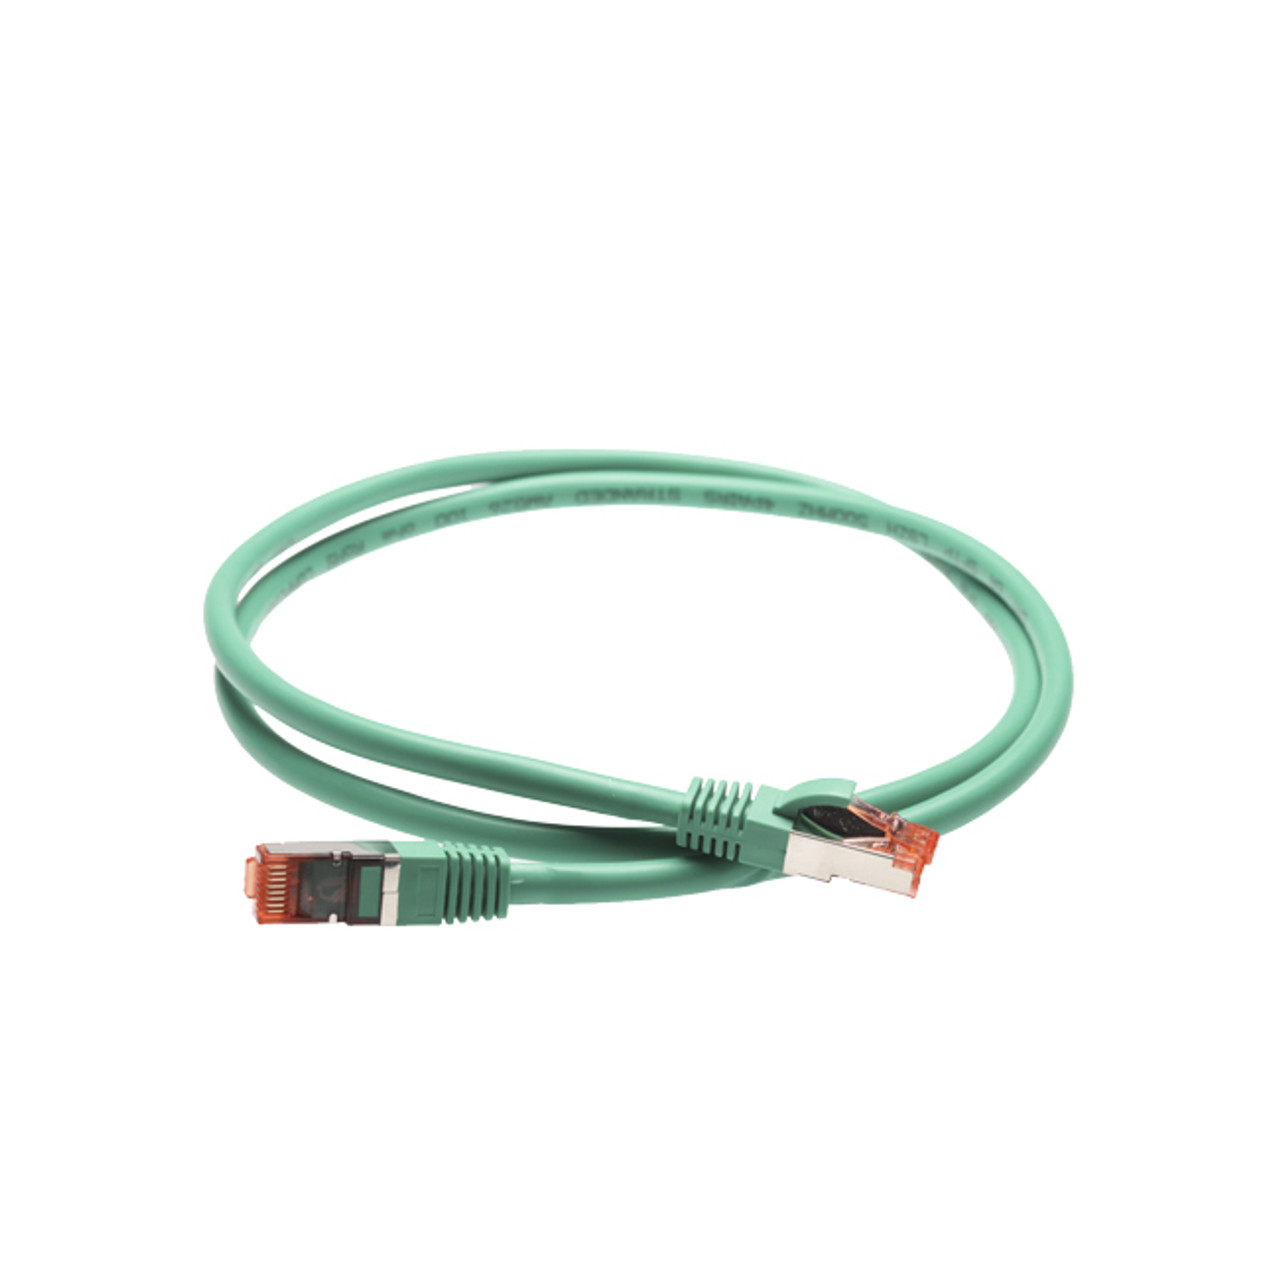 Image for 50m Cat 6A S/FTP LSZH Ethernet Network Cable. Green CX Computer Superstore